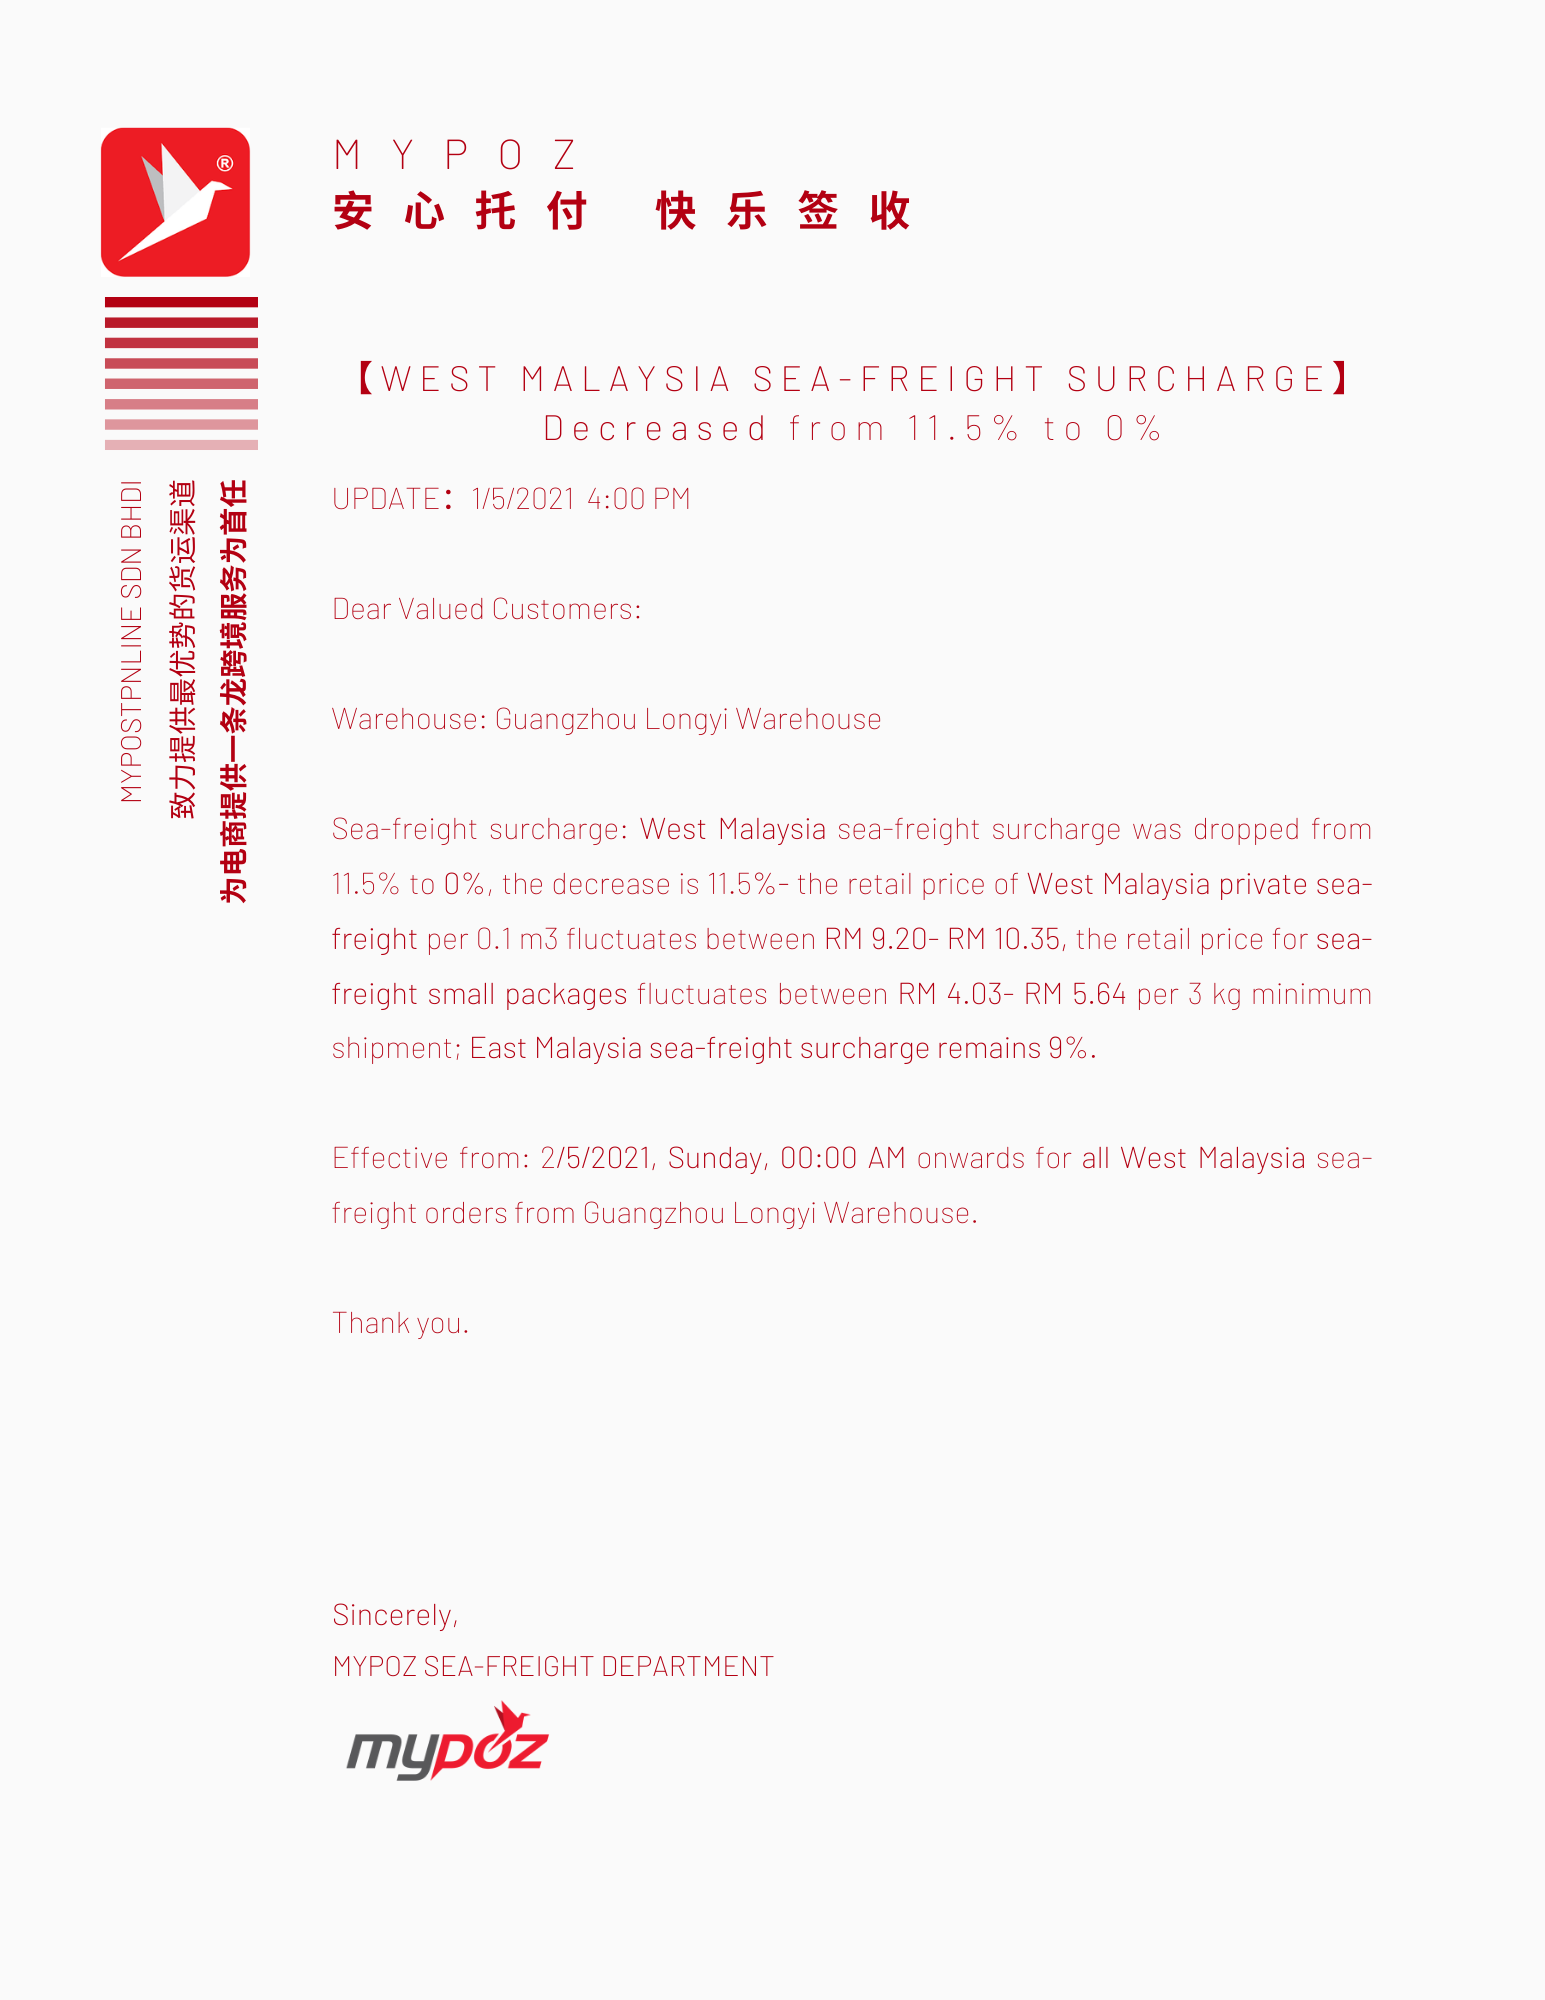 【NOTICE】WEST MALAYSIA SEA-FREIGHT DECREASED FROM 11.5% TO 0%